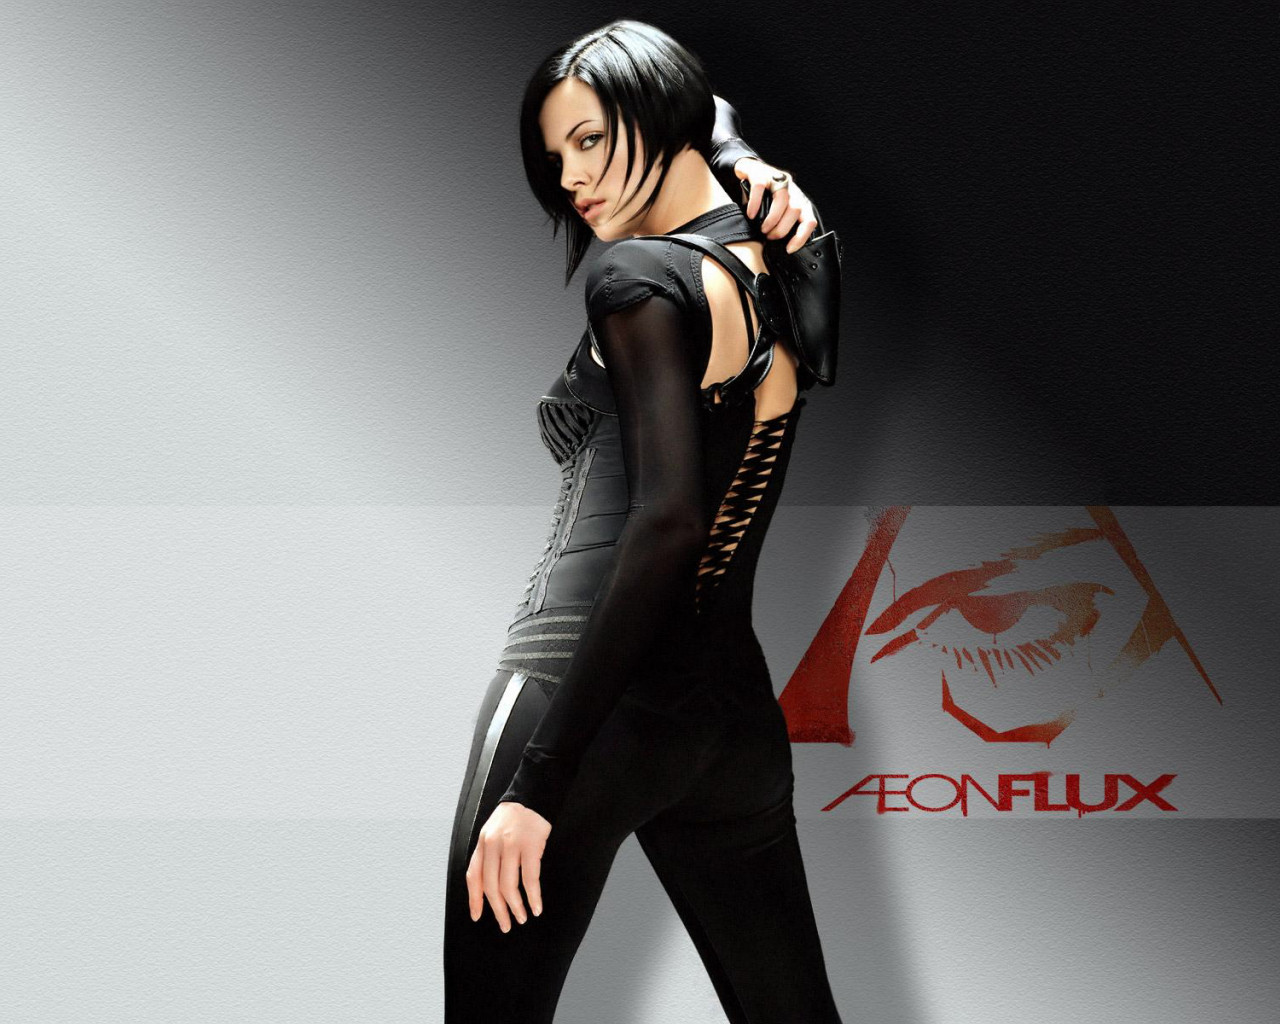 Beautiful Fiction Girl Wallpapers Charlize In Aeon Flux Wallpapers Charlize In Aeon Flux